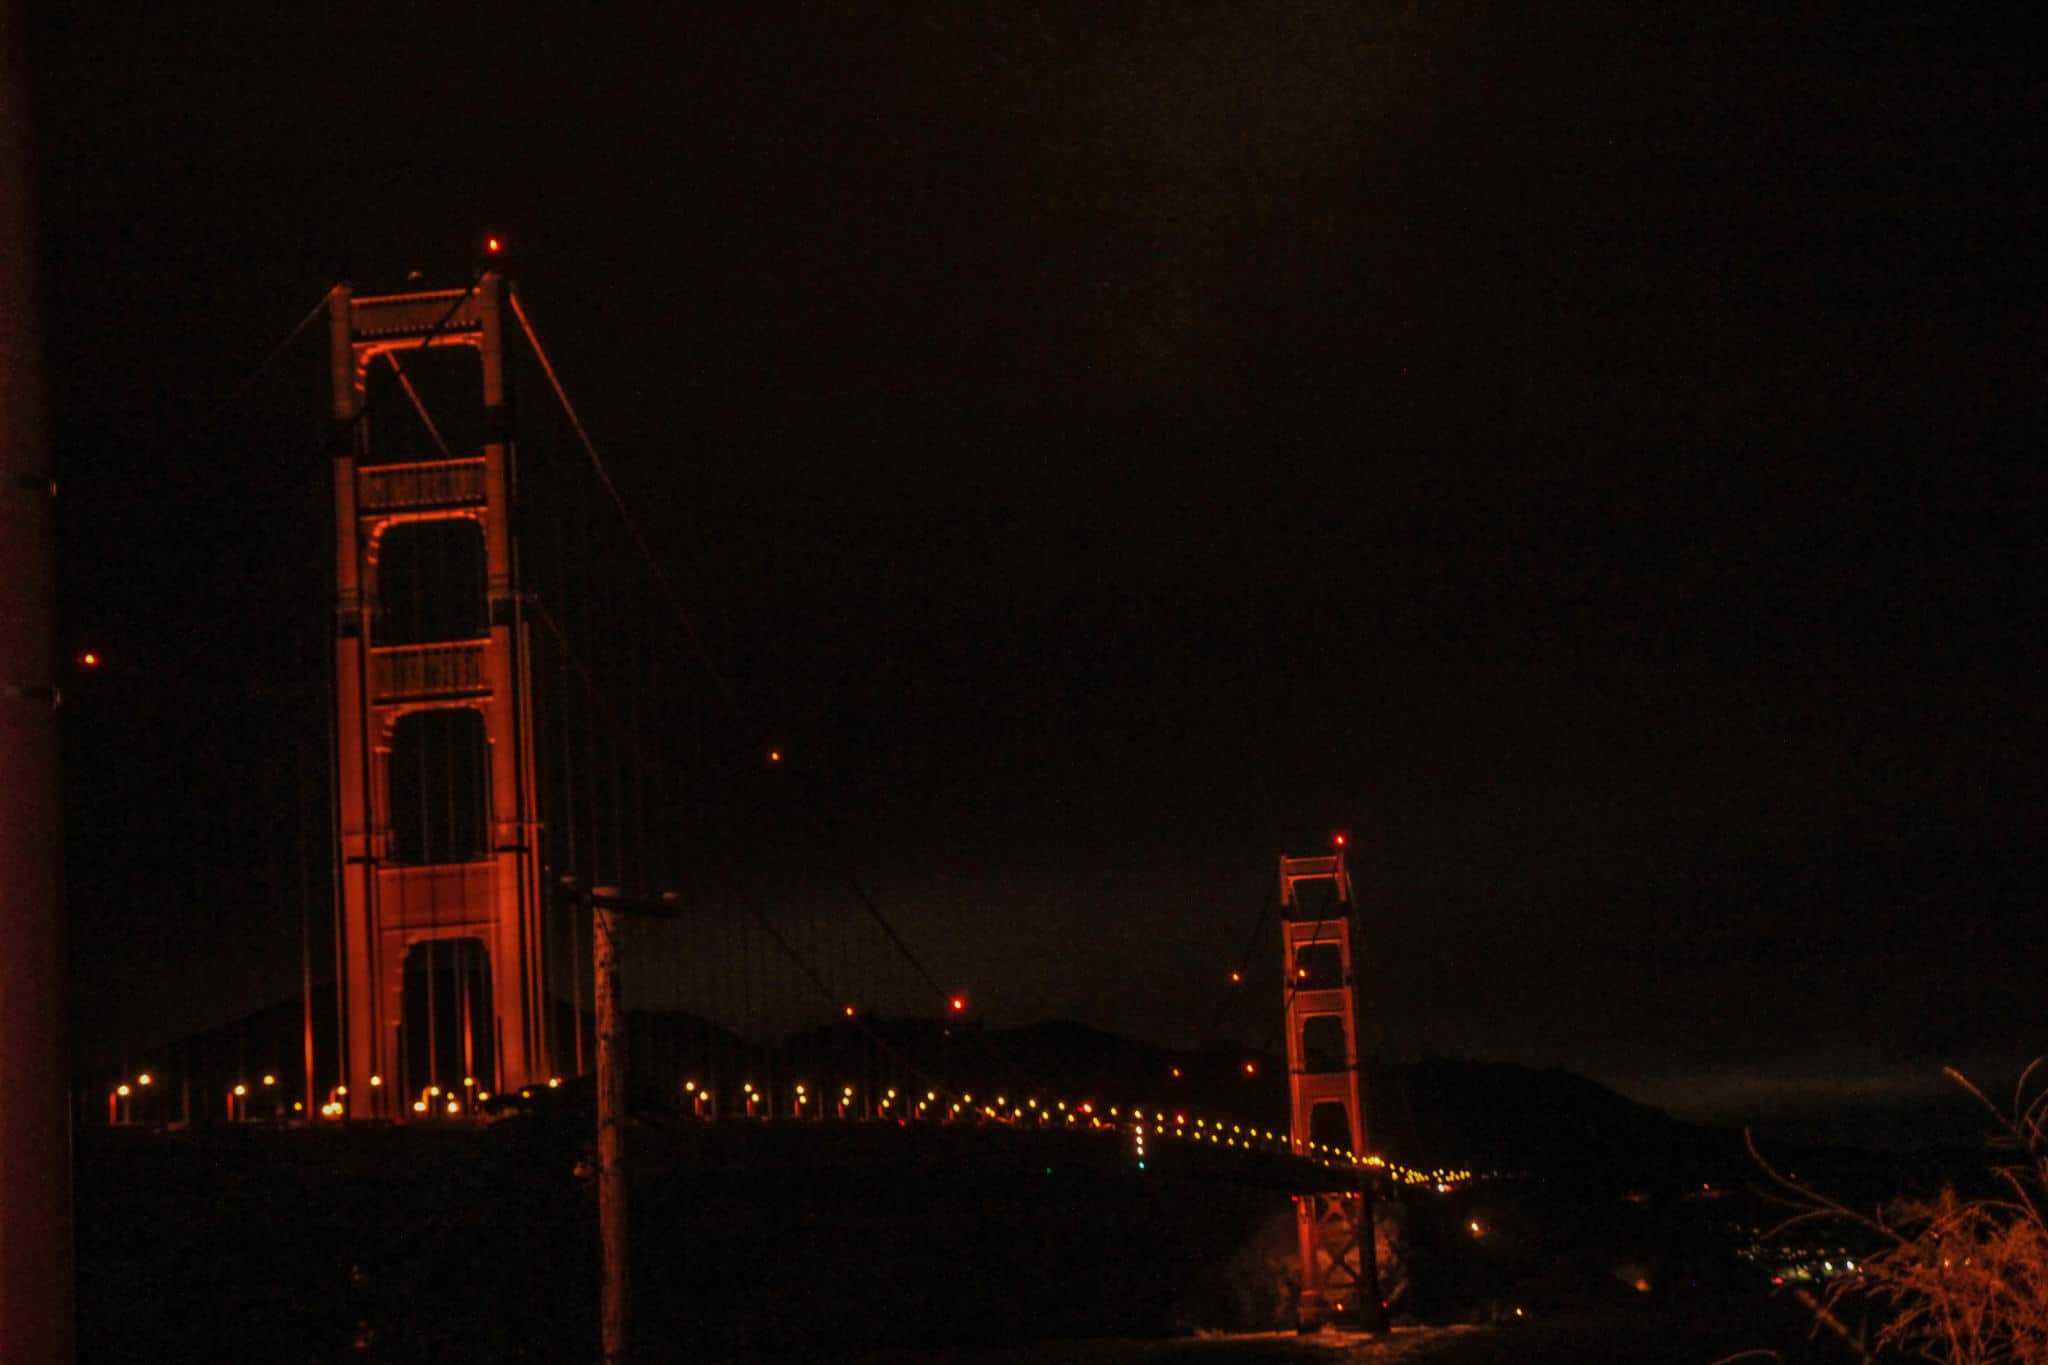 Seeing the Golden Gate Bridge is an absolute must during your 2 days in San Francisco